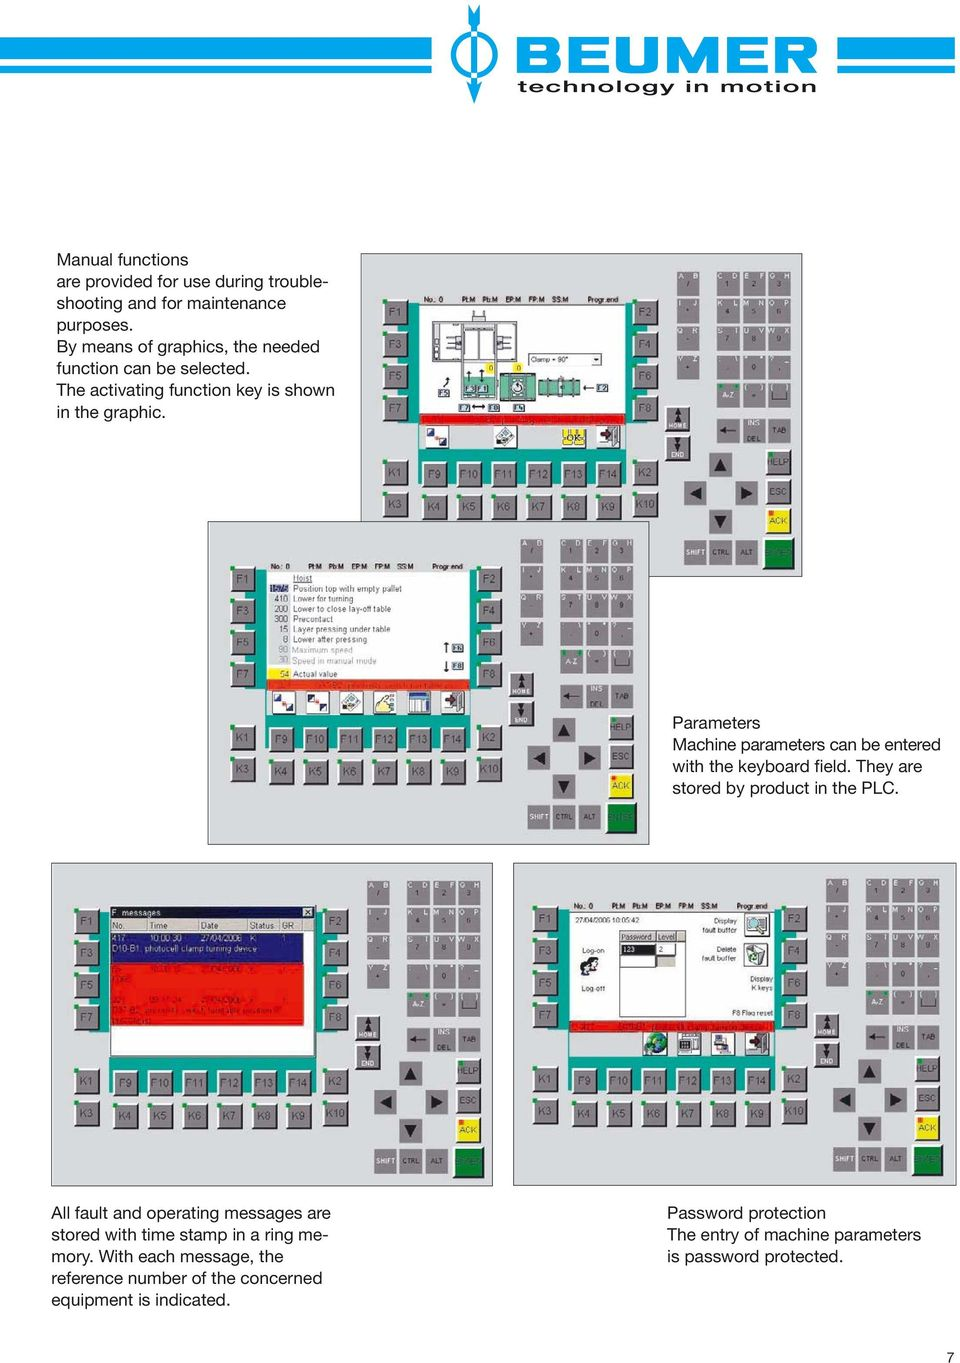 Parameters Machine parameters can be entered with the keyboard field. They are stored by product in the PLC.